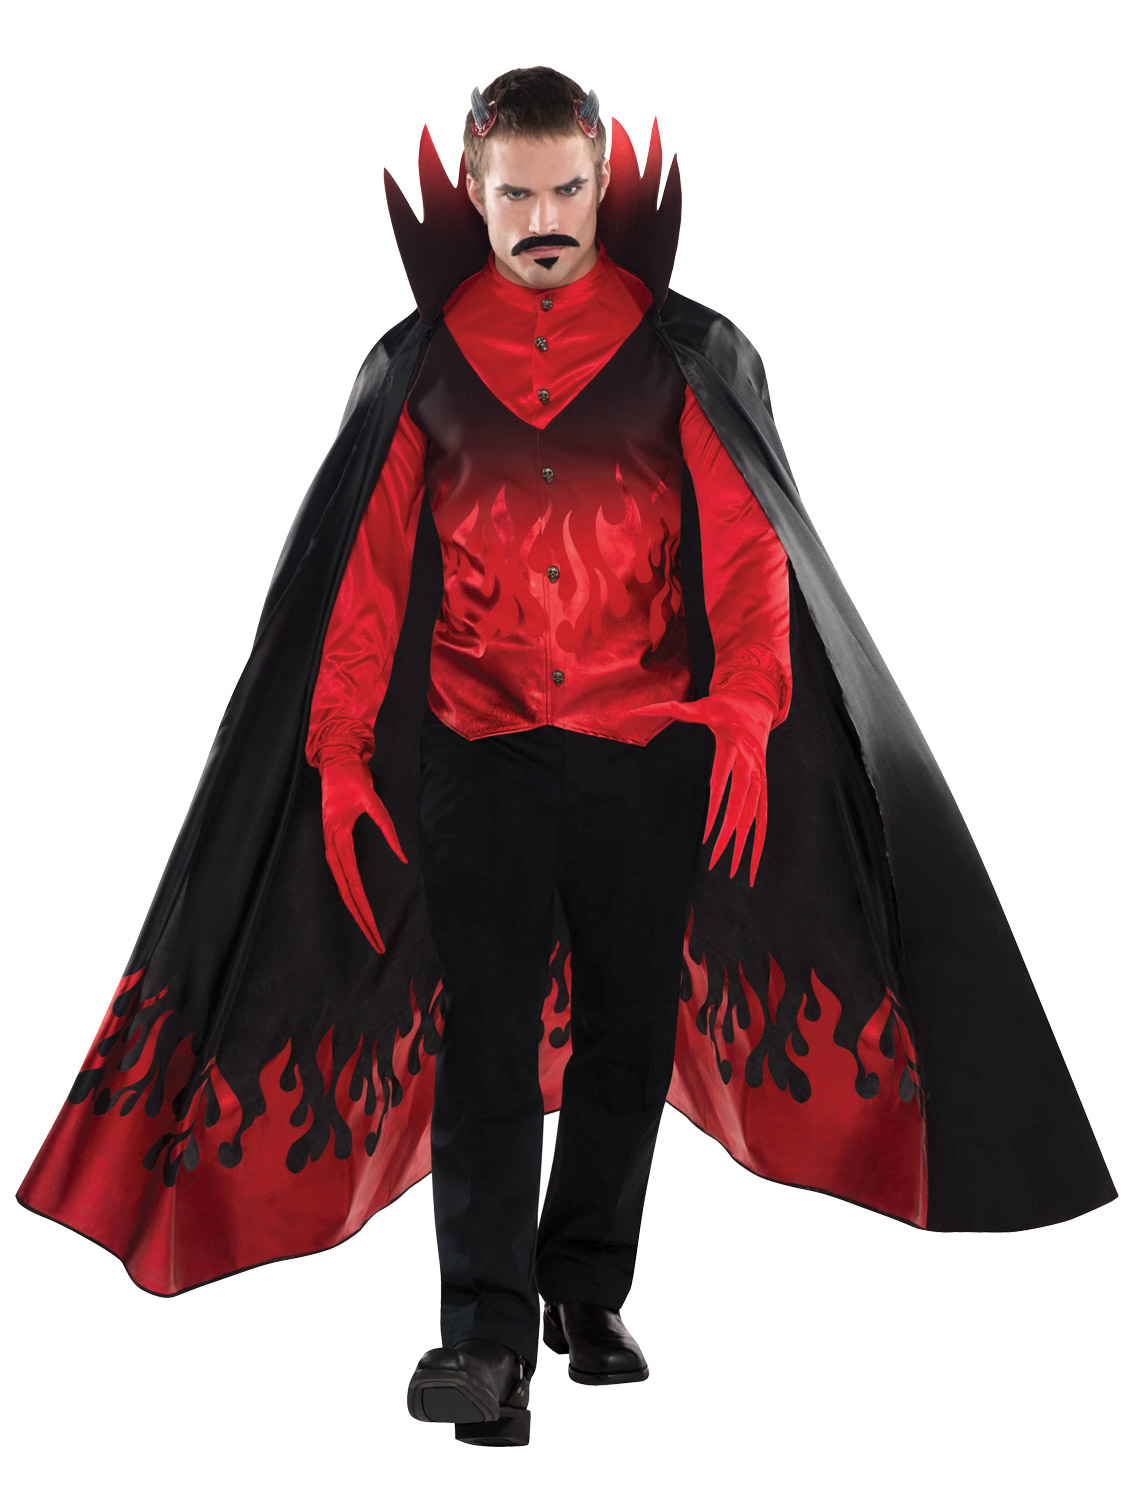 Mens diablo costume adults satan halloween fancy dress demon devil transform yourself into a devil with this mens evil diablo devil costume ideal if you are dressing up this halloween solutioingenieria Image collections